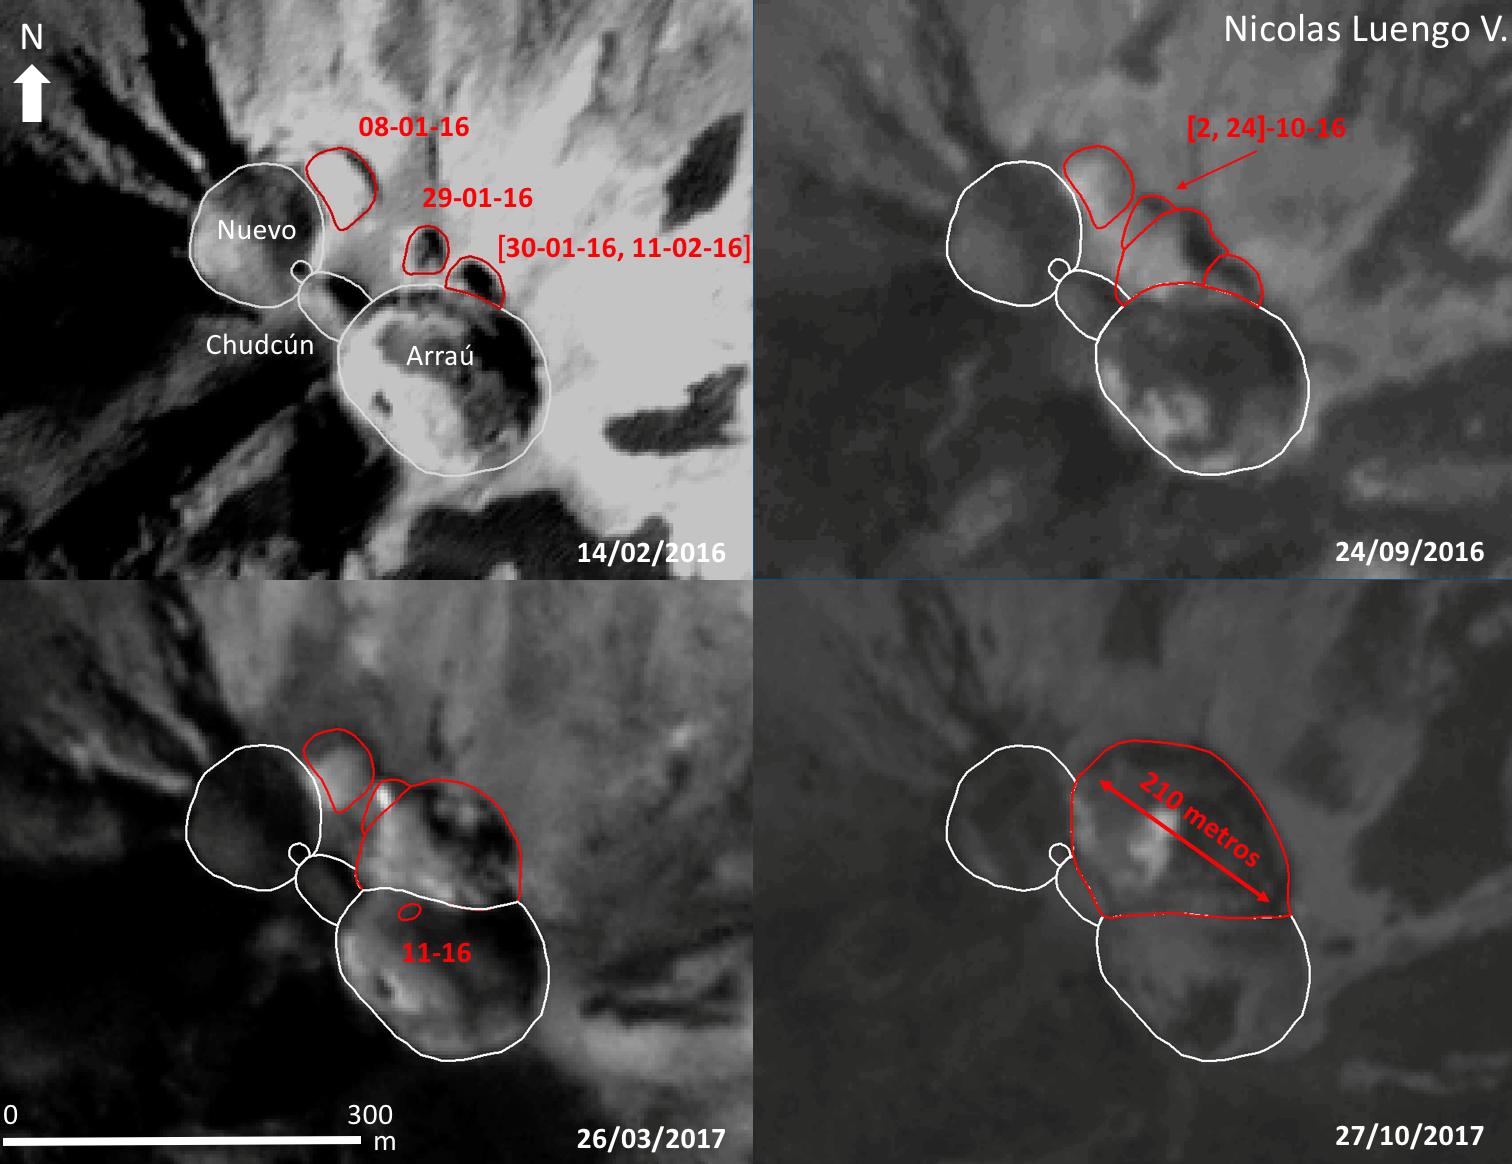 Nevados de Chillan complex - formation of the Nicanor crater between January 2016 and October 2017 - Doc. Volcanologia in Chile